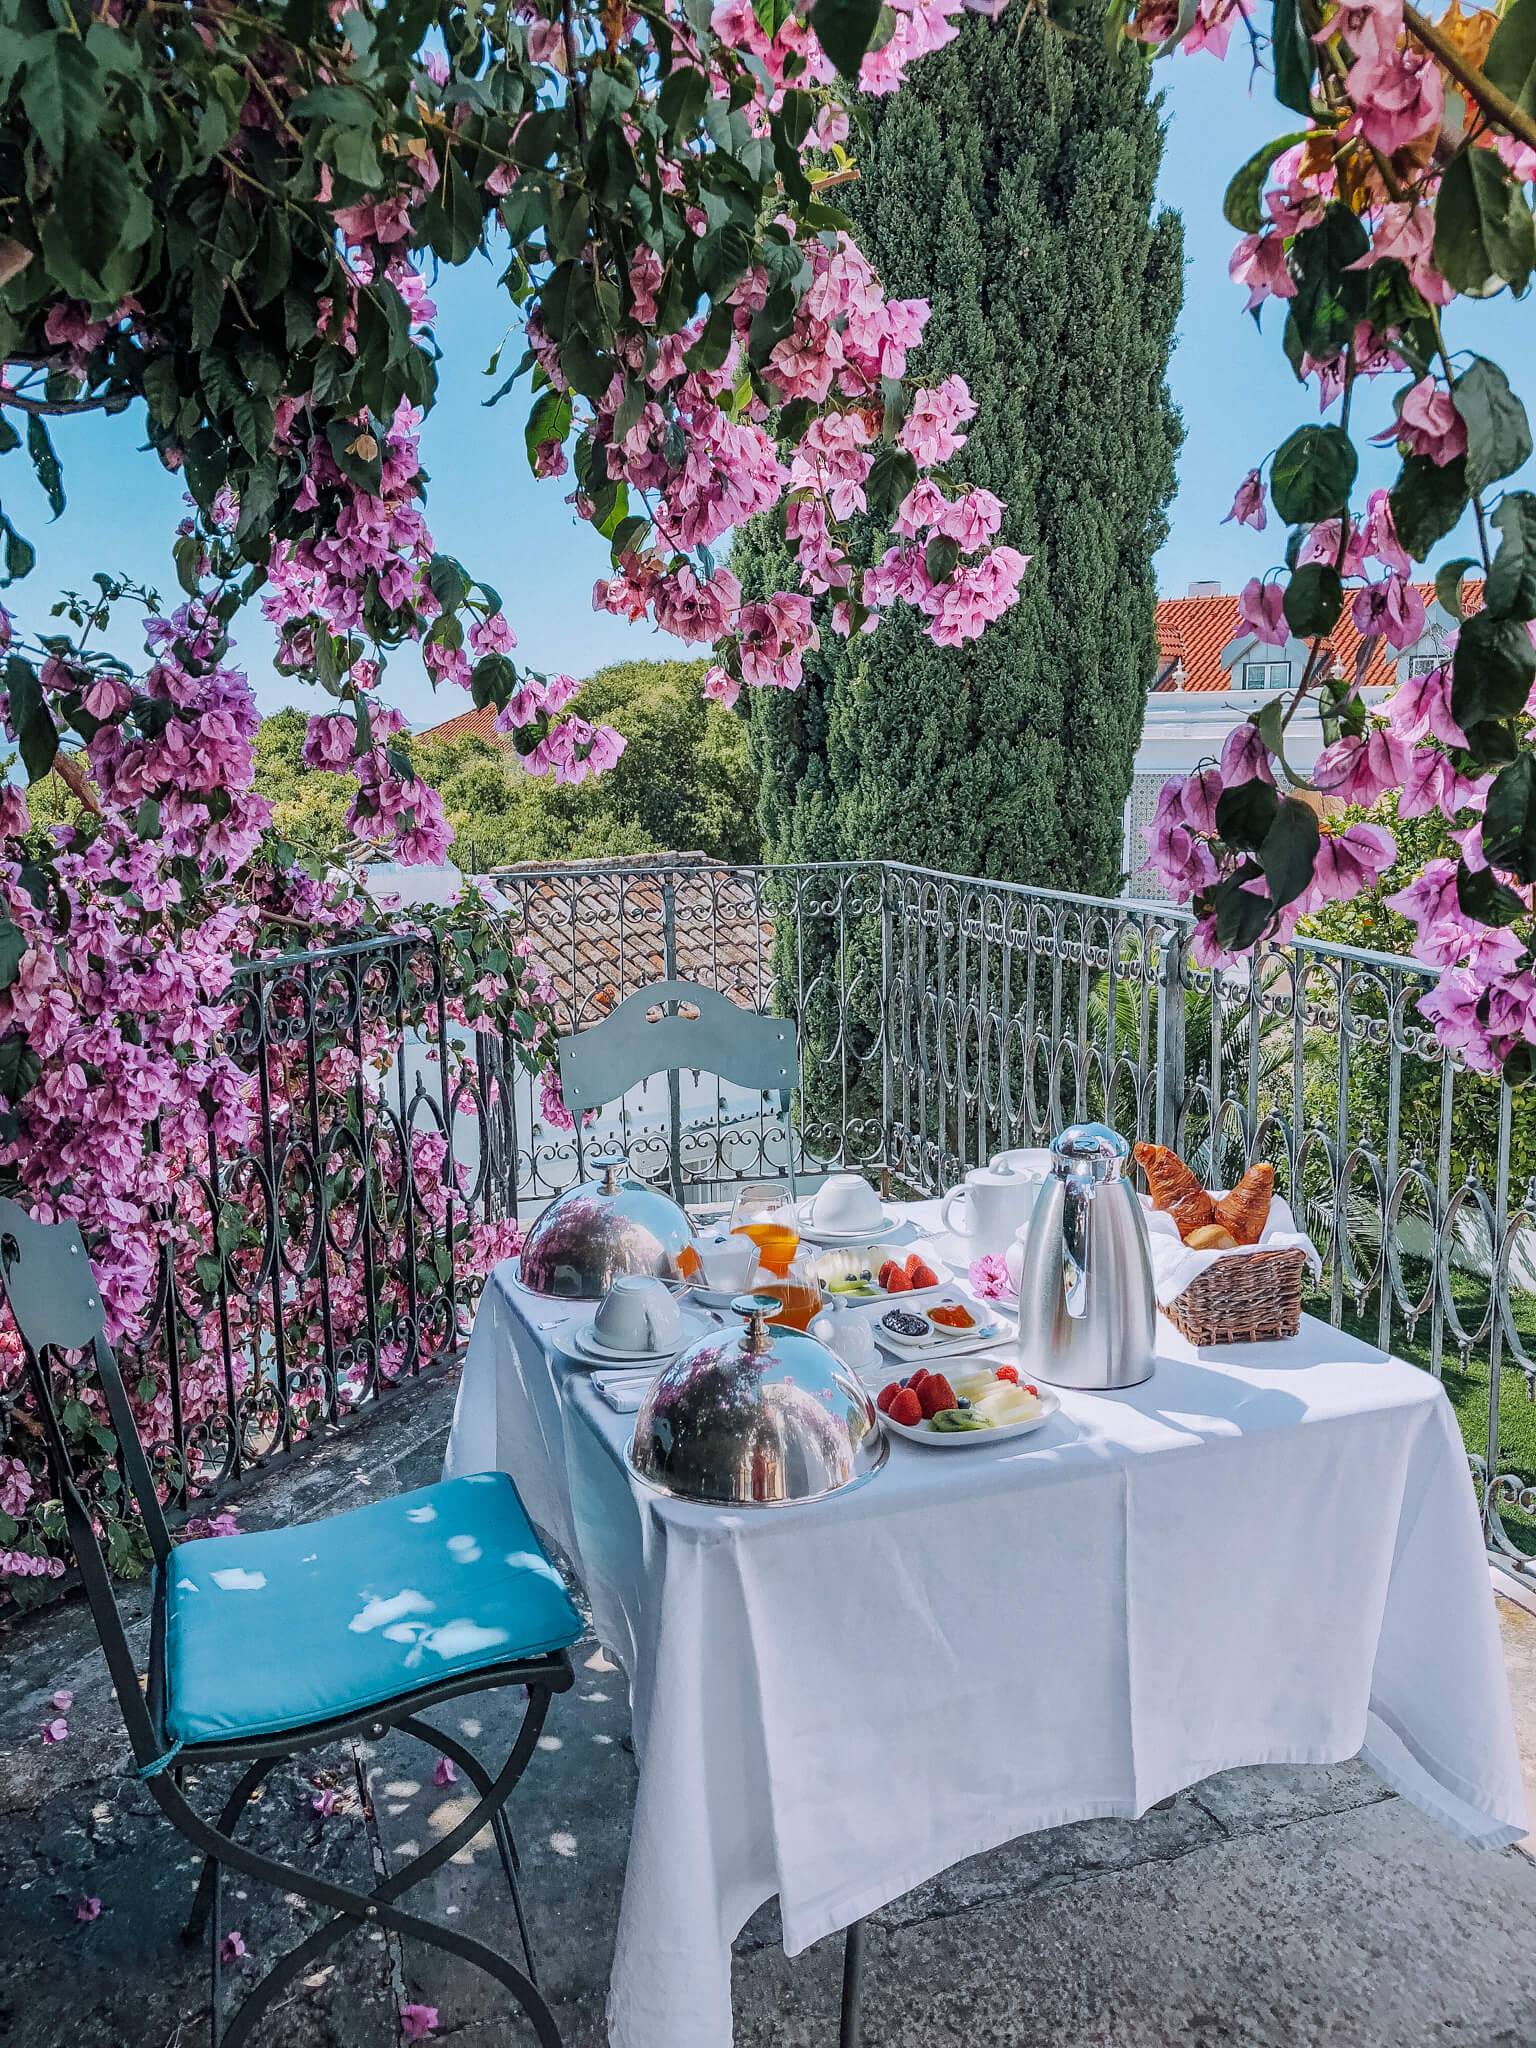 Our favorite place to have breakfast - on our private patio.